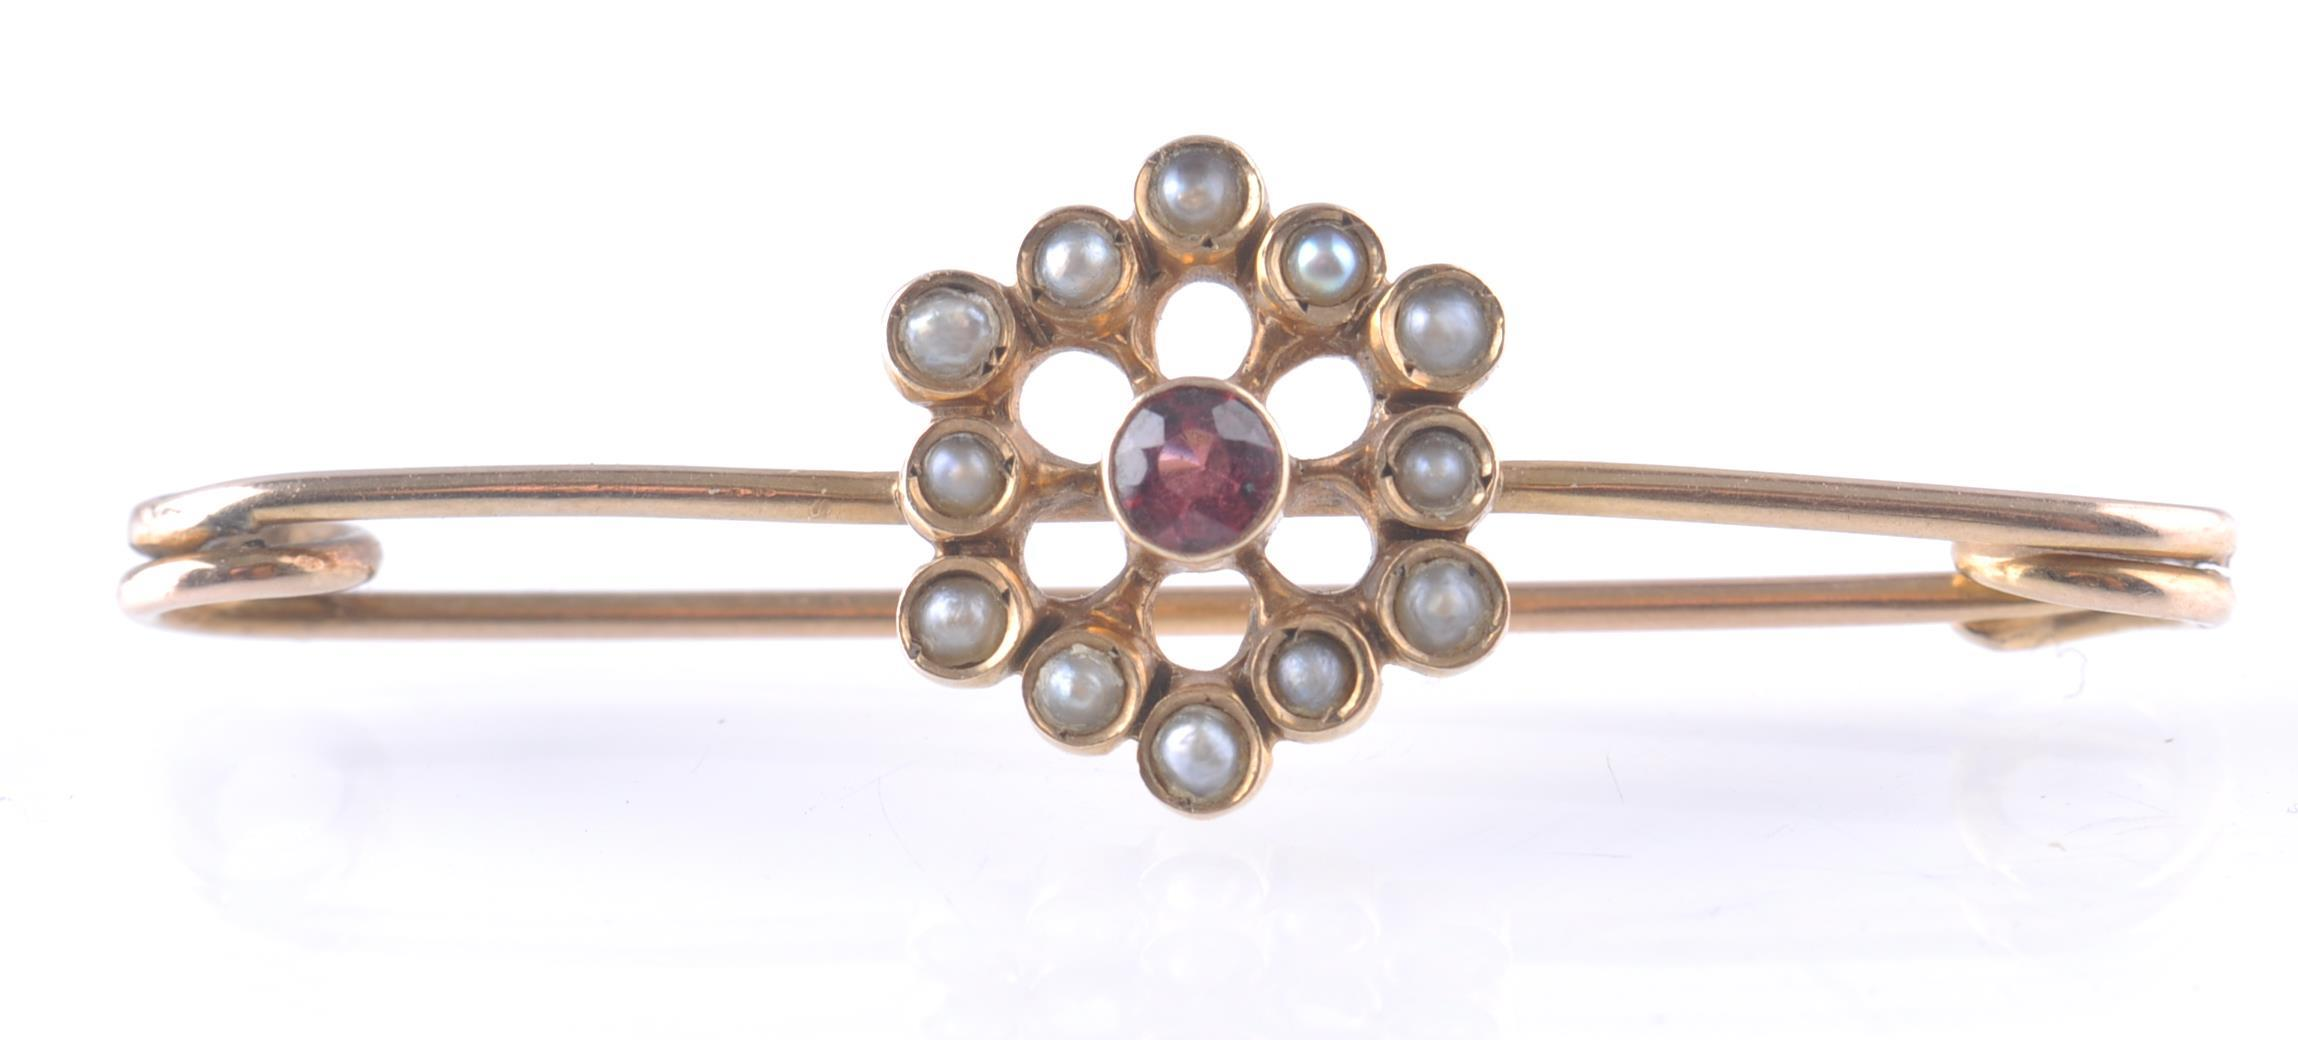 Lot 131 - VICTORIAN 9CT GOLD SEED PEARL AND RUBY BAR BROOCH